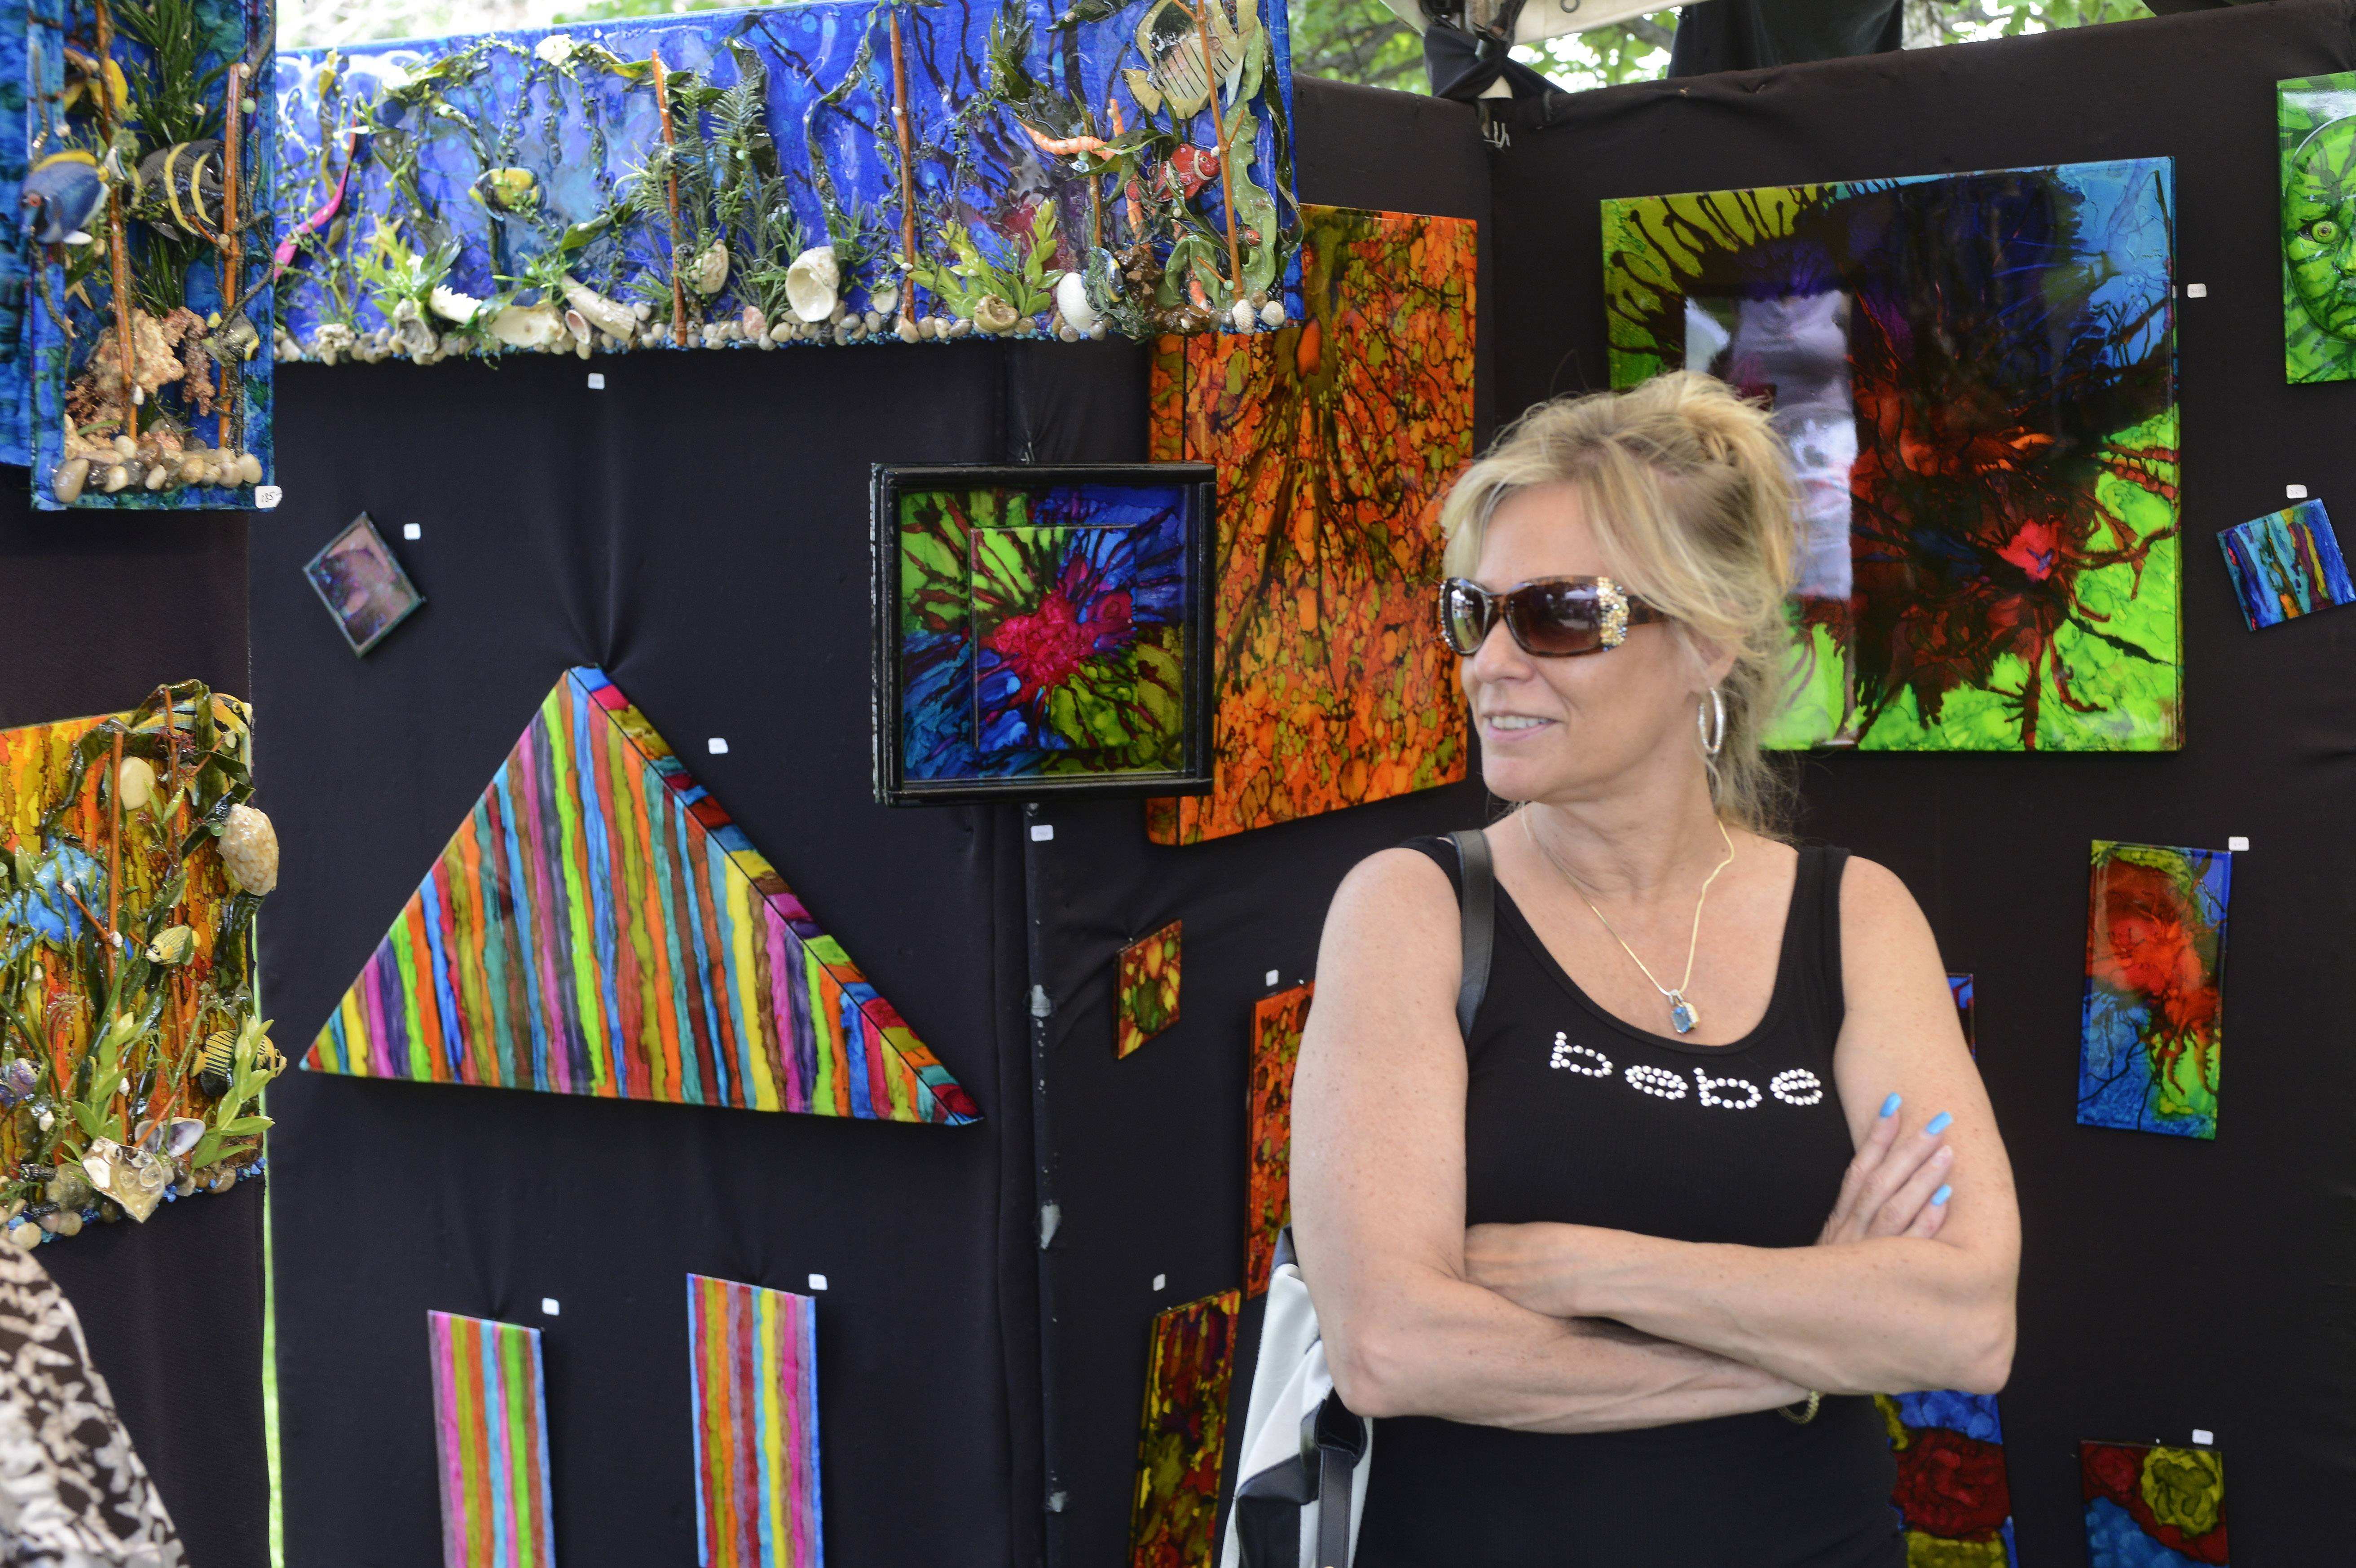 Veronica Payne, of South Elgin, views mixed media 3D artwork by Robert Aebi of Lathrop, MO during the Arts in Bartlett Festival of the Arts event at Bartlett Park Saturday.